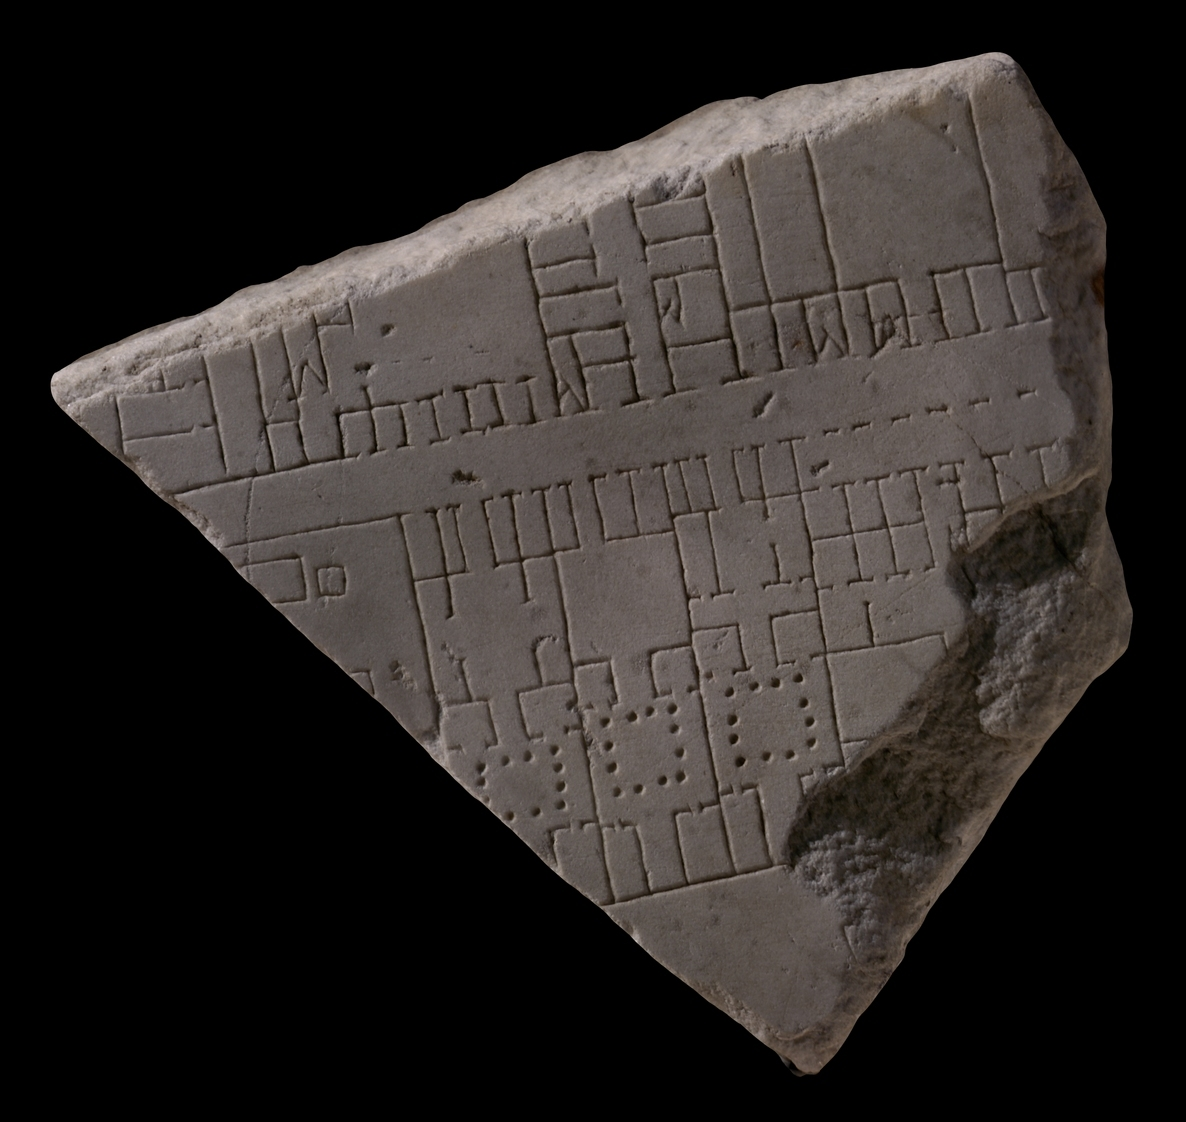 A marble tablet with carvings etched on that consists of lines